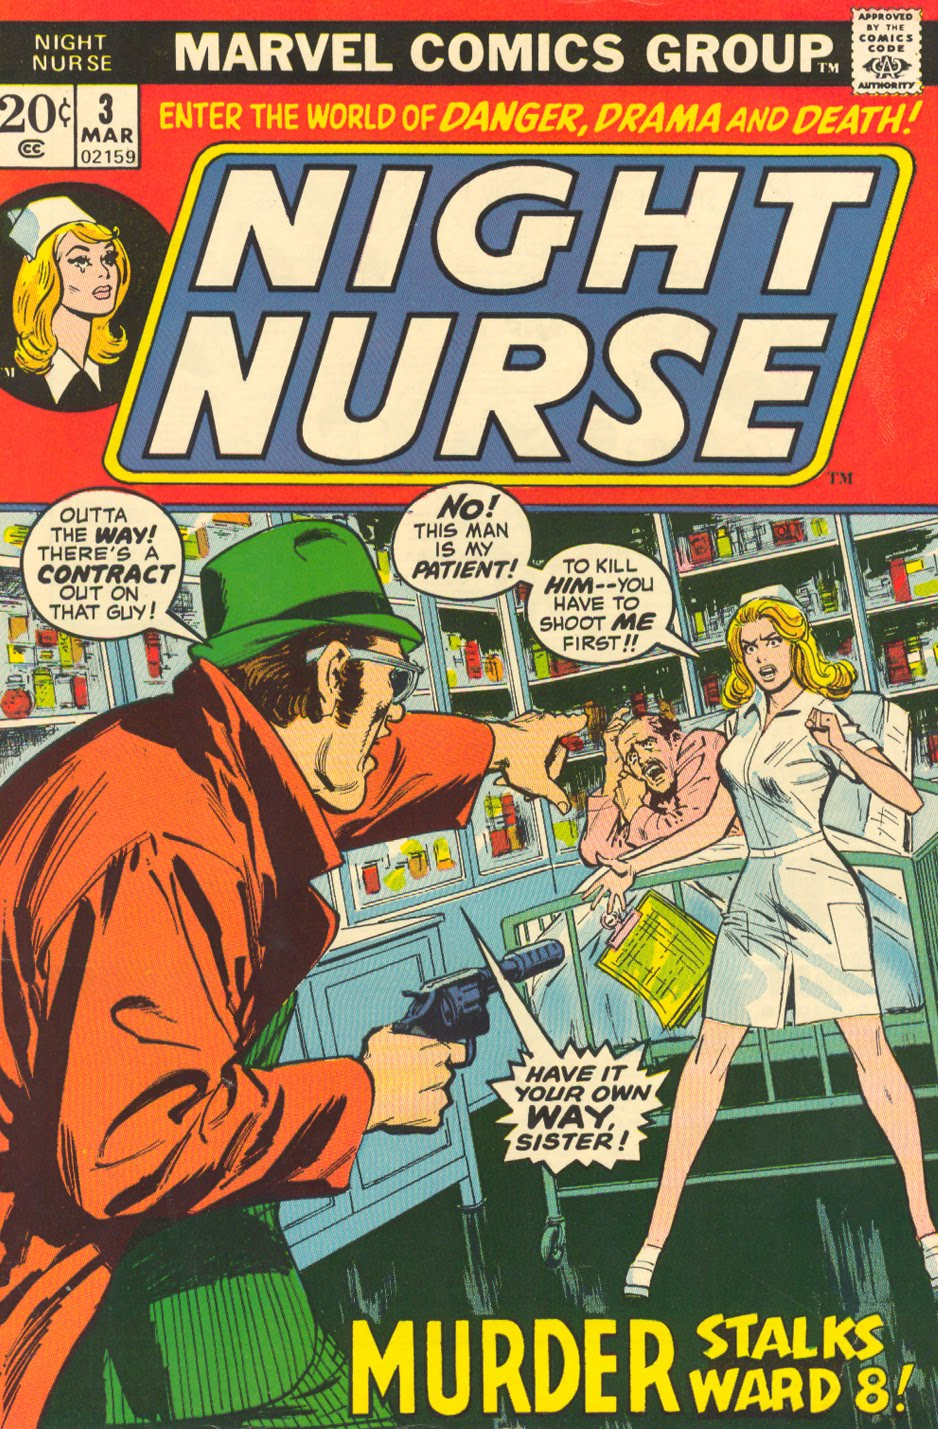 Night Nurse #3 Linda Carter Marvel Comics romance comic book